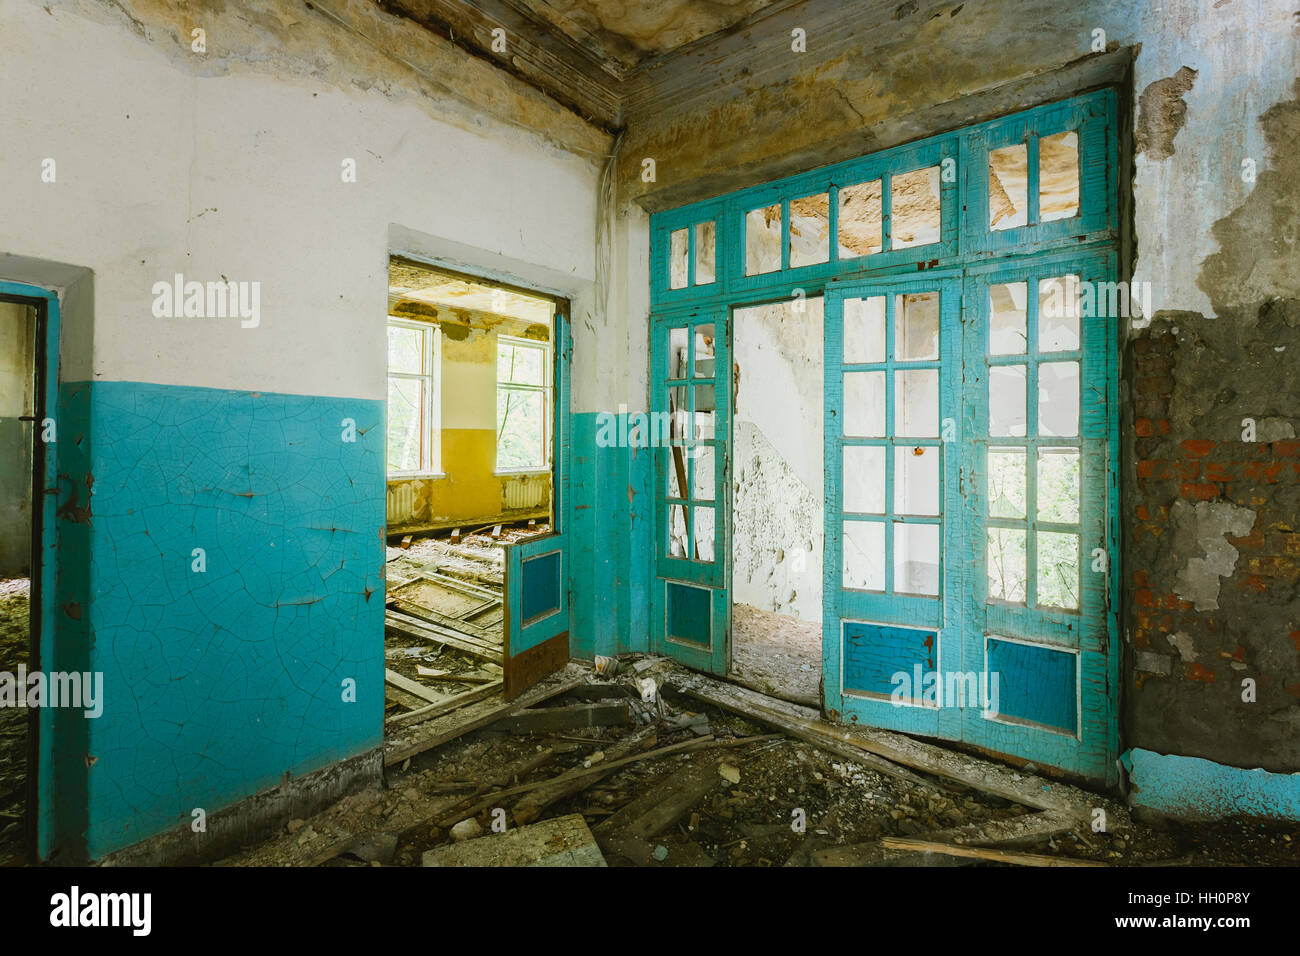 The Ruined Interior Of Abandoned School After Chernobyl Nuclear Disaster In Evacuation Zone. Consequences Of The - Stock Image